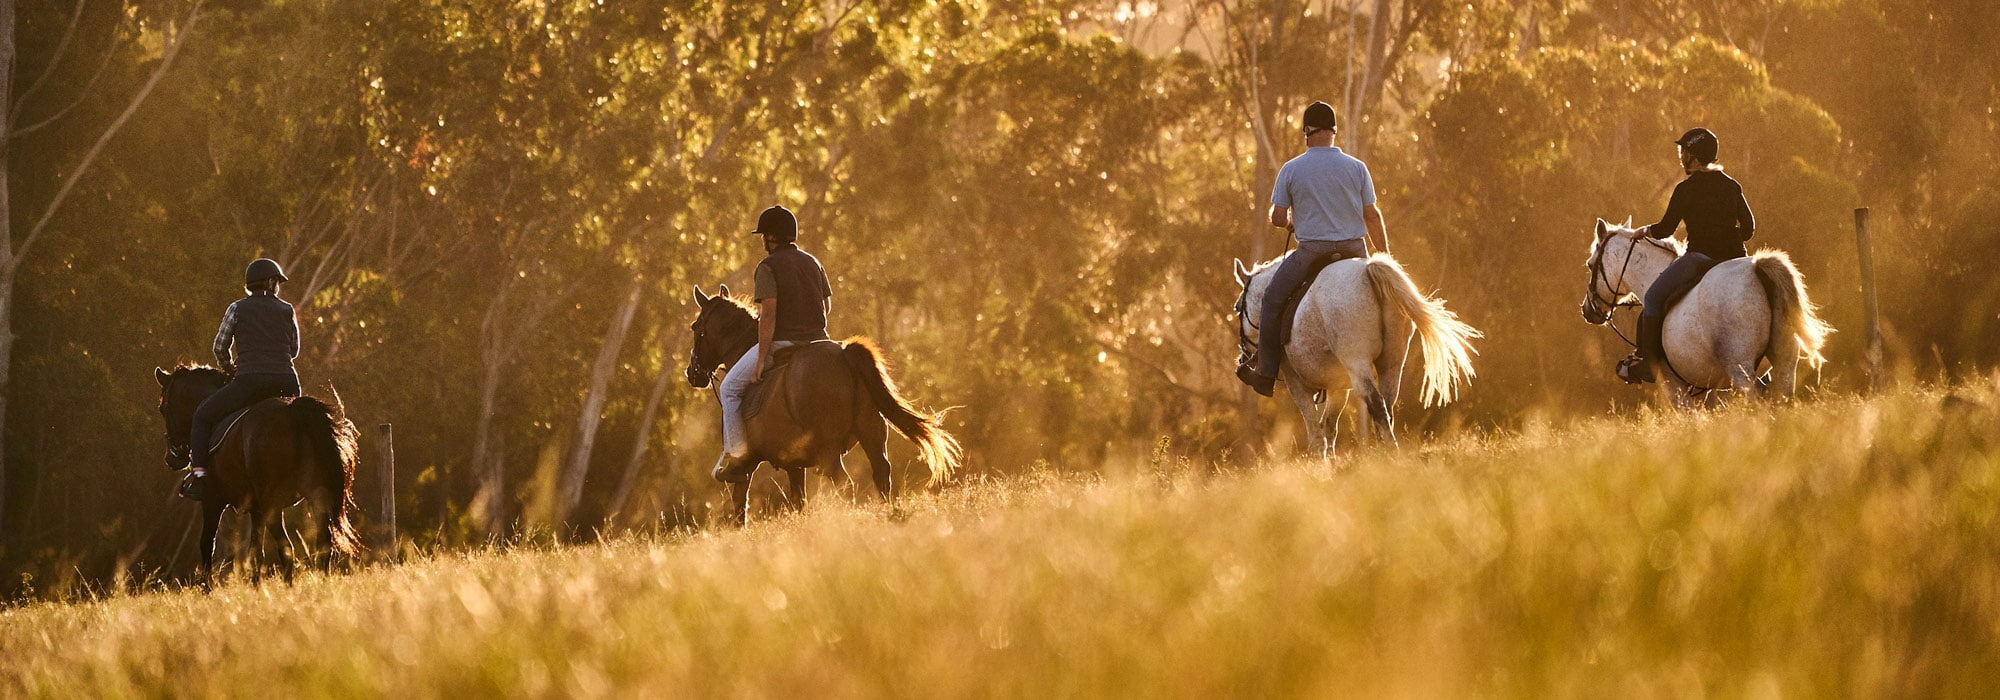 4 People Horseriding in Southafrica